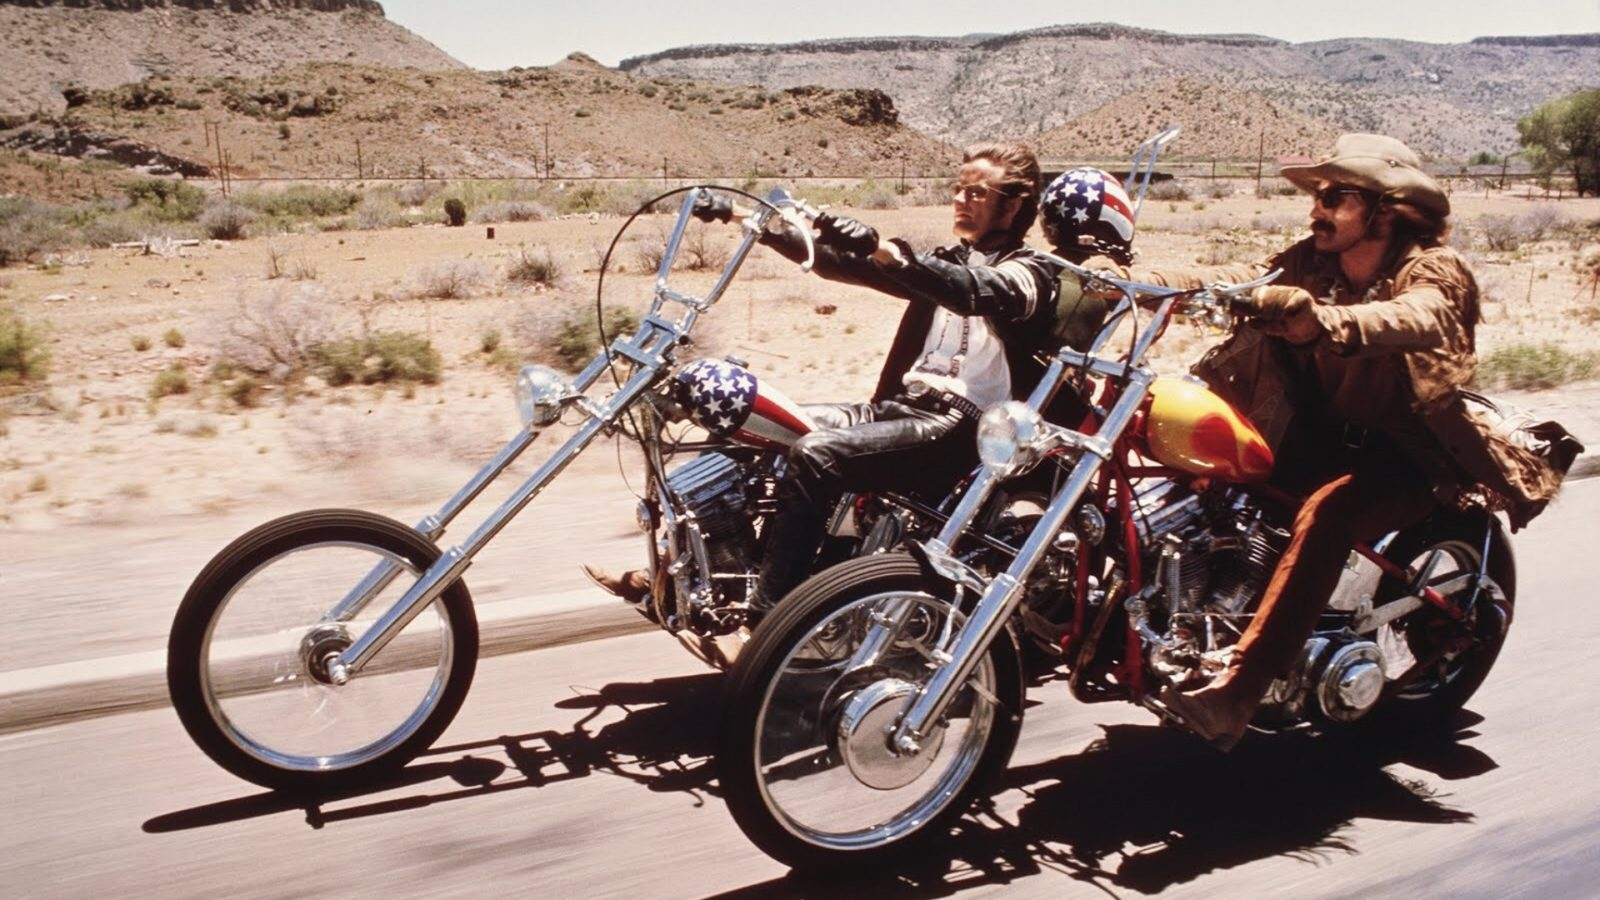 10 unforgettable motorcycles in films that you would want to ride